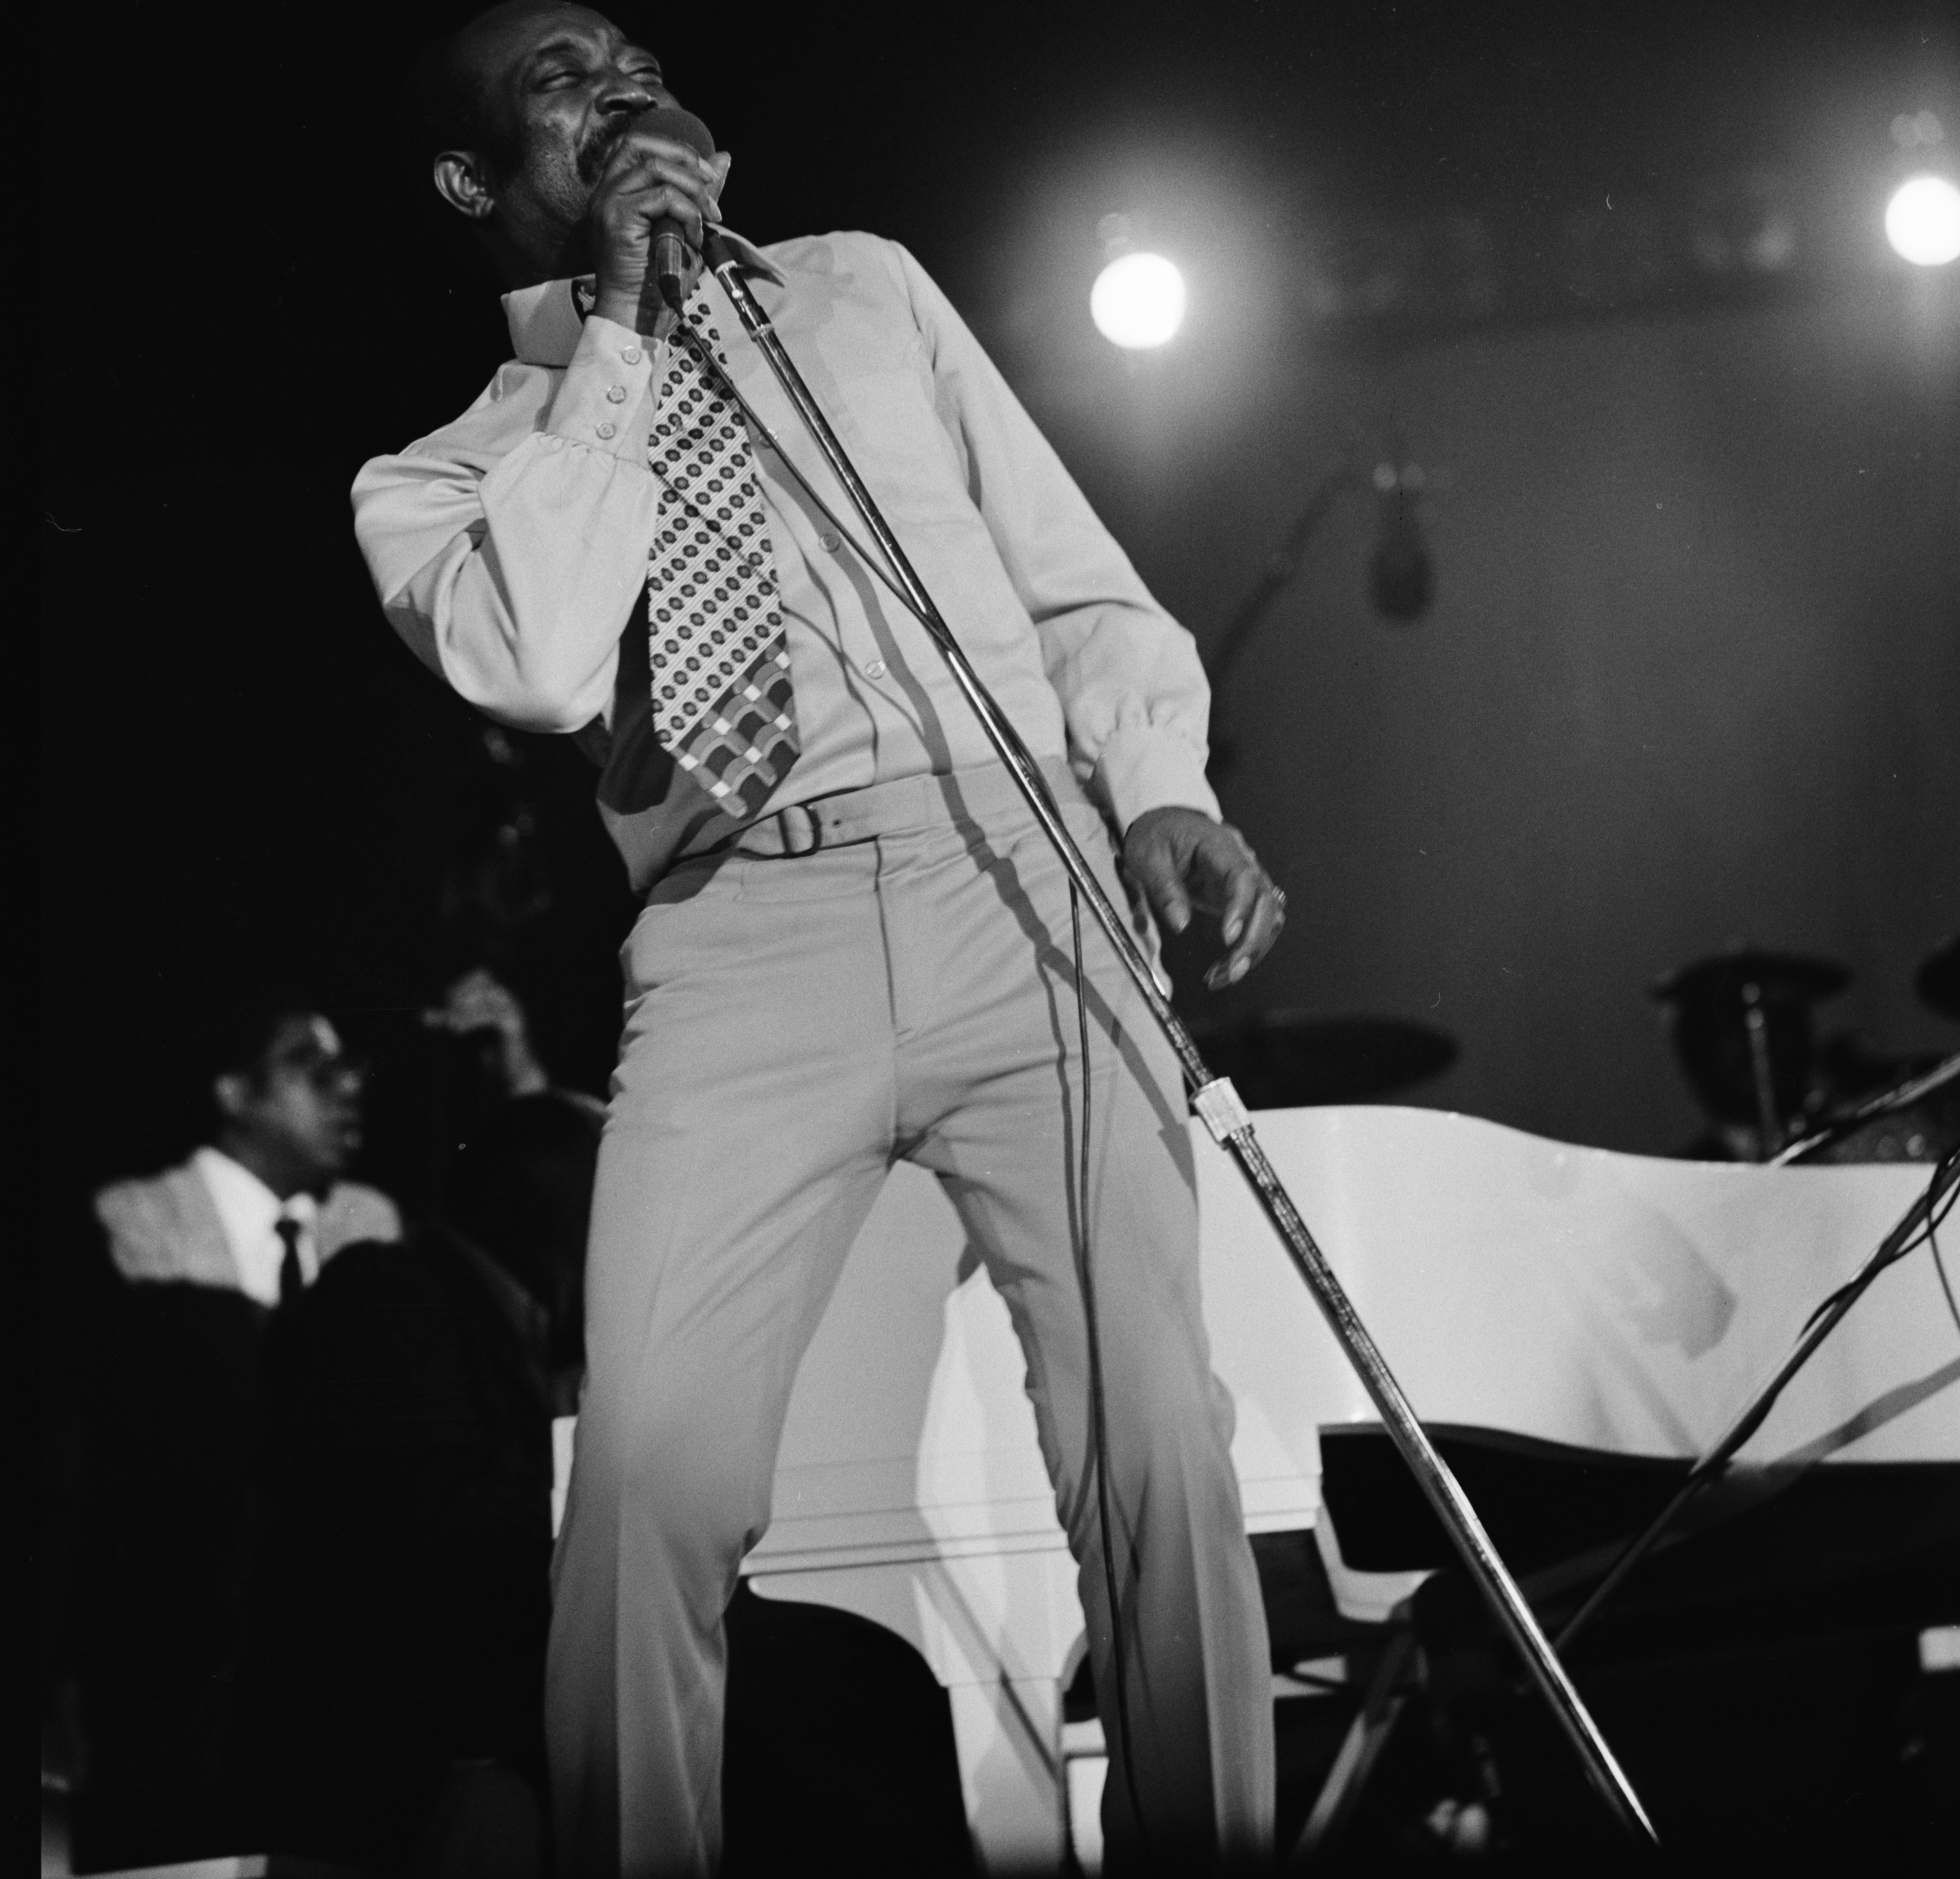 Jimmy Ricks of the Count Basie Orchestra at the 1973 Ann Arbor Blues and Jazz Festival image